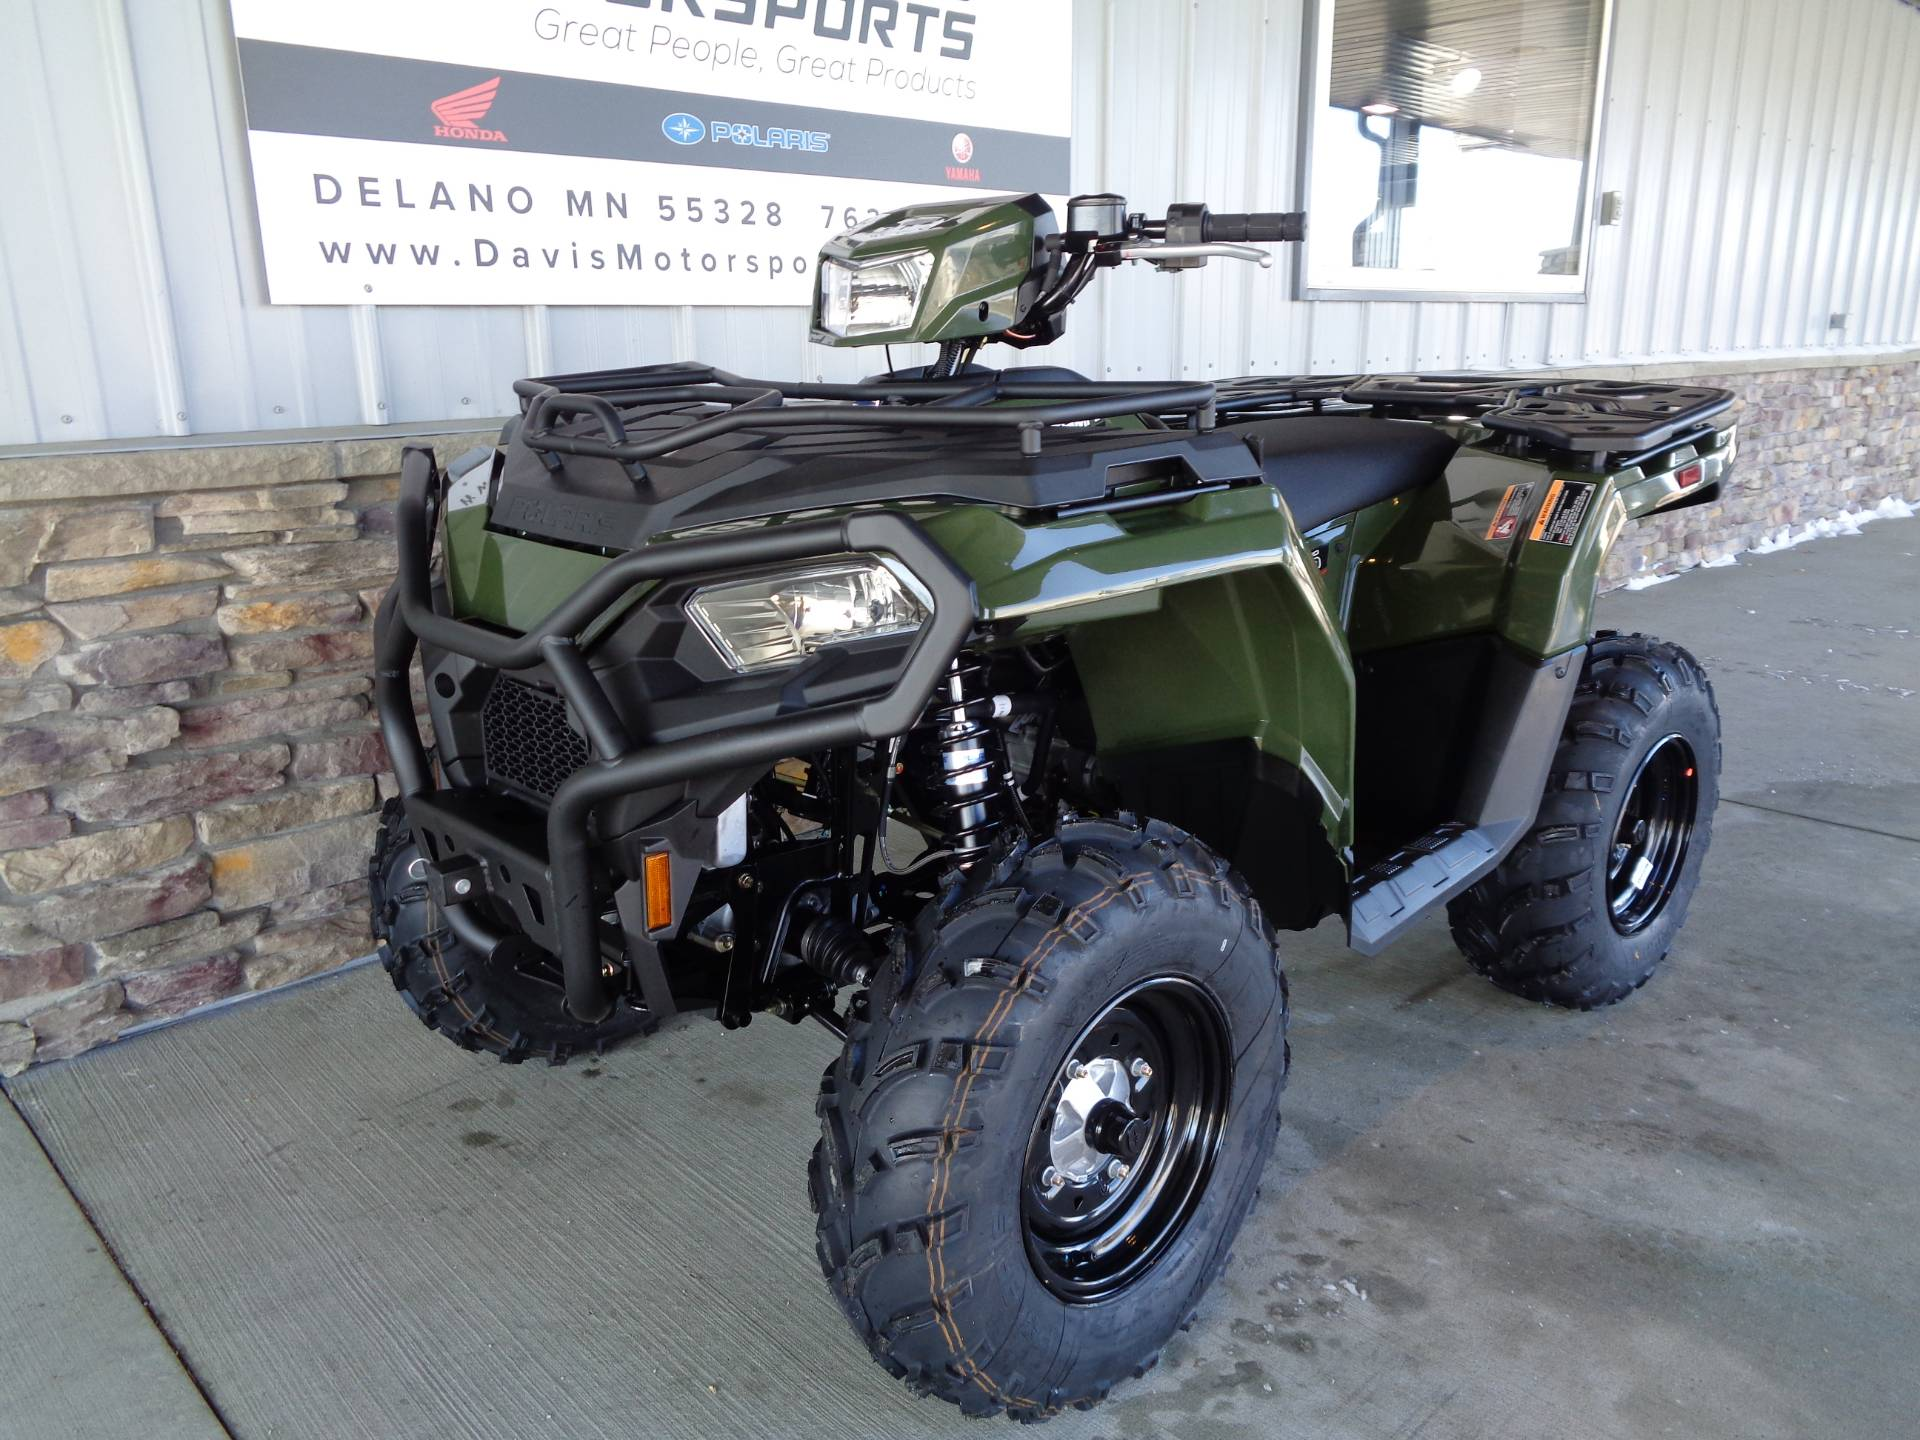 2021 Polaris Sportsman 570 EPS Utility Package in Delano, Minnesota - Photo 4